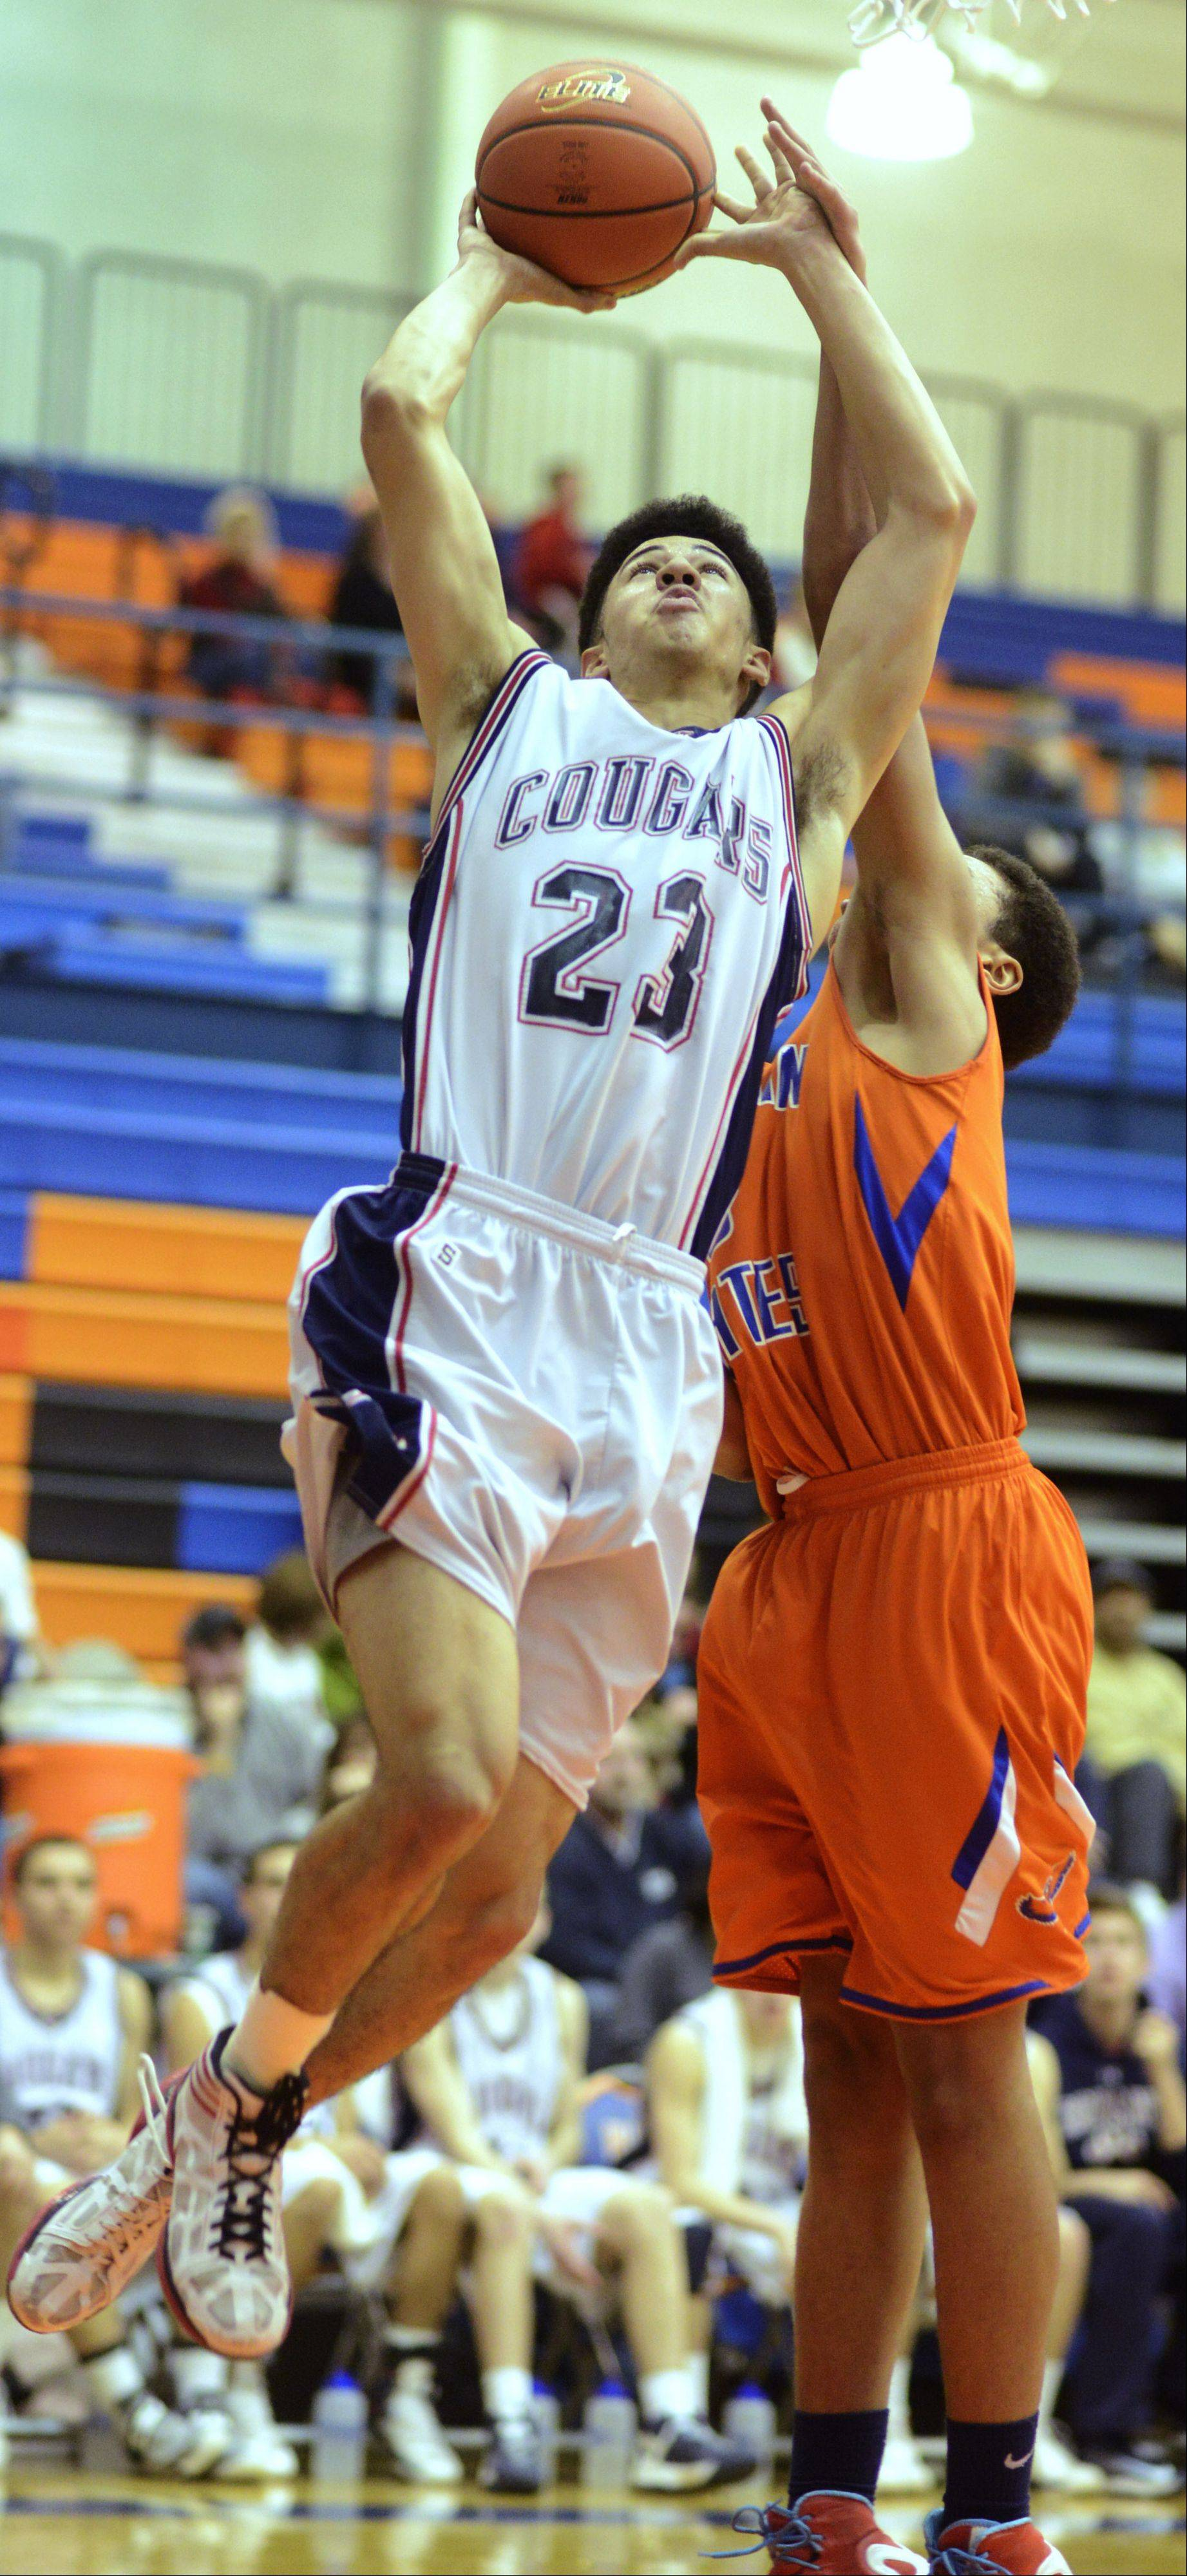 Conant's Robert Hudson, left, drives to the basket for a layup as Hoffman Estates' Jordan Robinson defends.